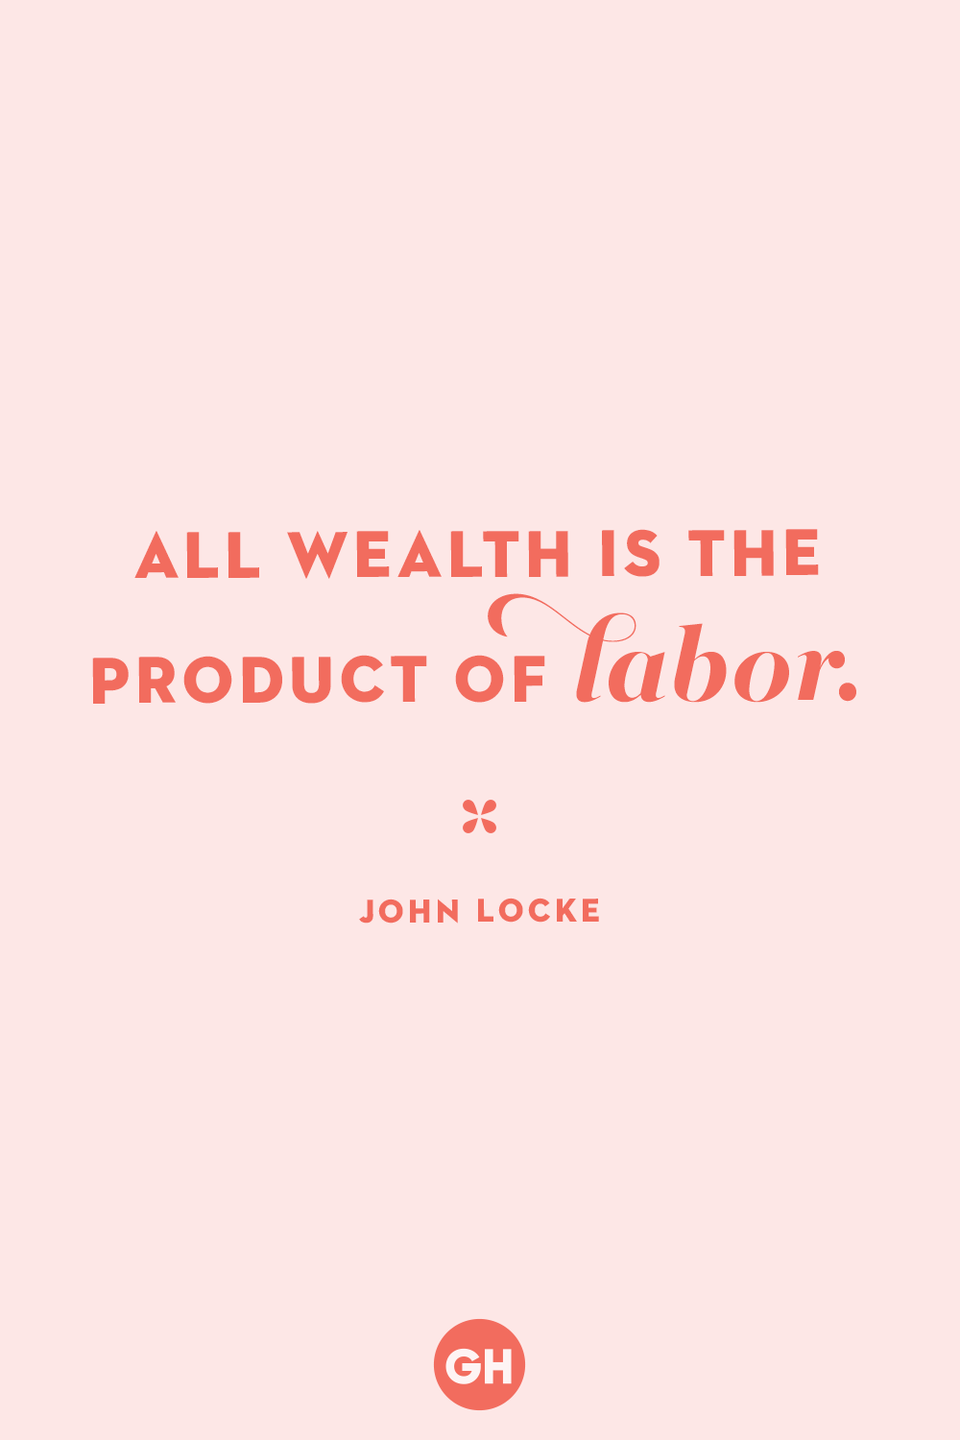 <p>All wealth is the product of labor.</p>